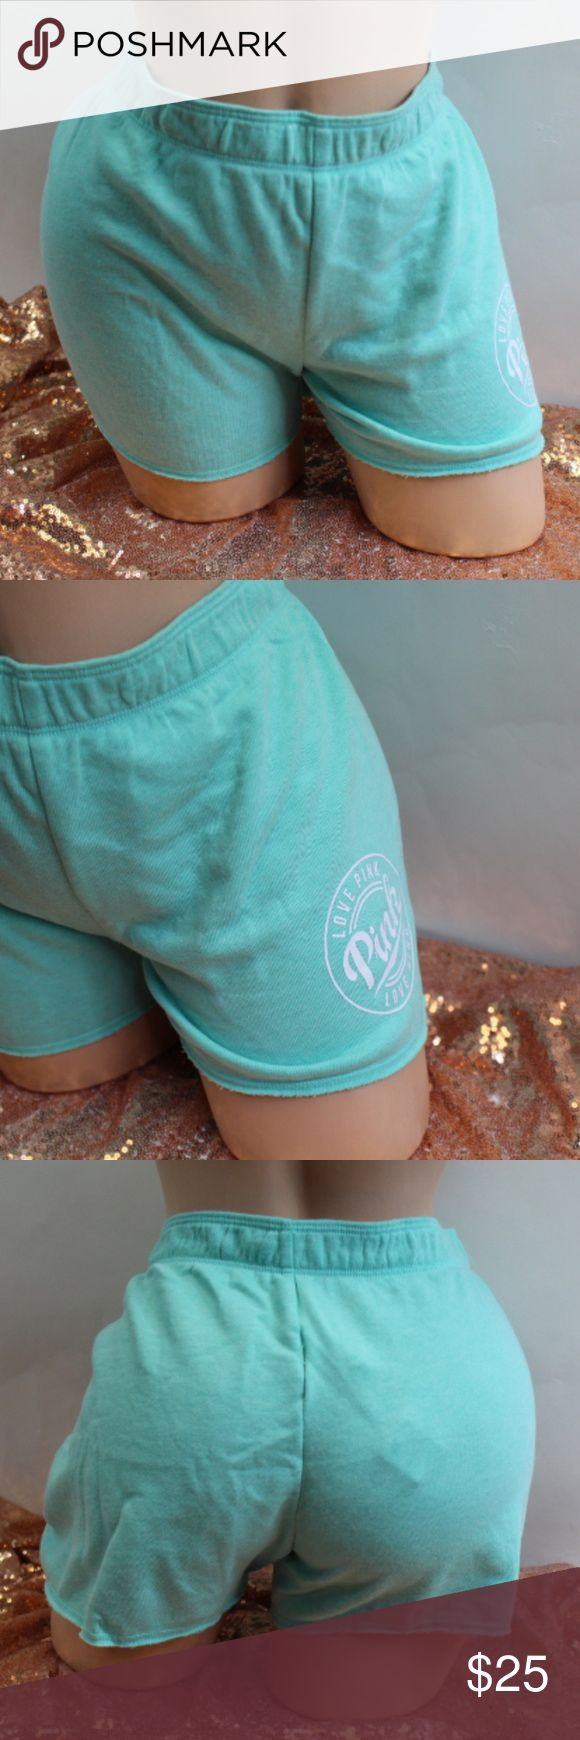 Victoria's Secret Pink Mint Green Shorts #873 Victoria's Secret Pink Mint Green Shorts  elastic waist band love pink logo Victoria's Secret Shorts